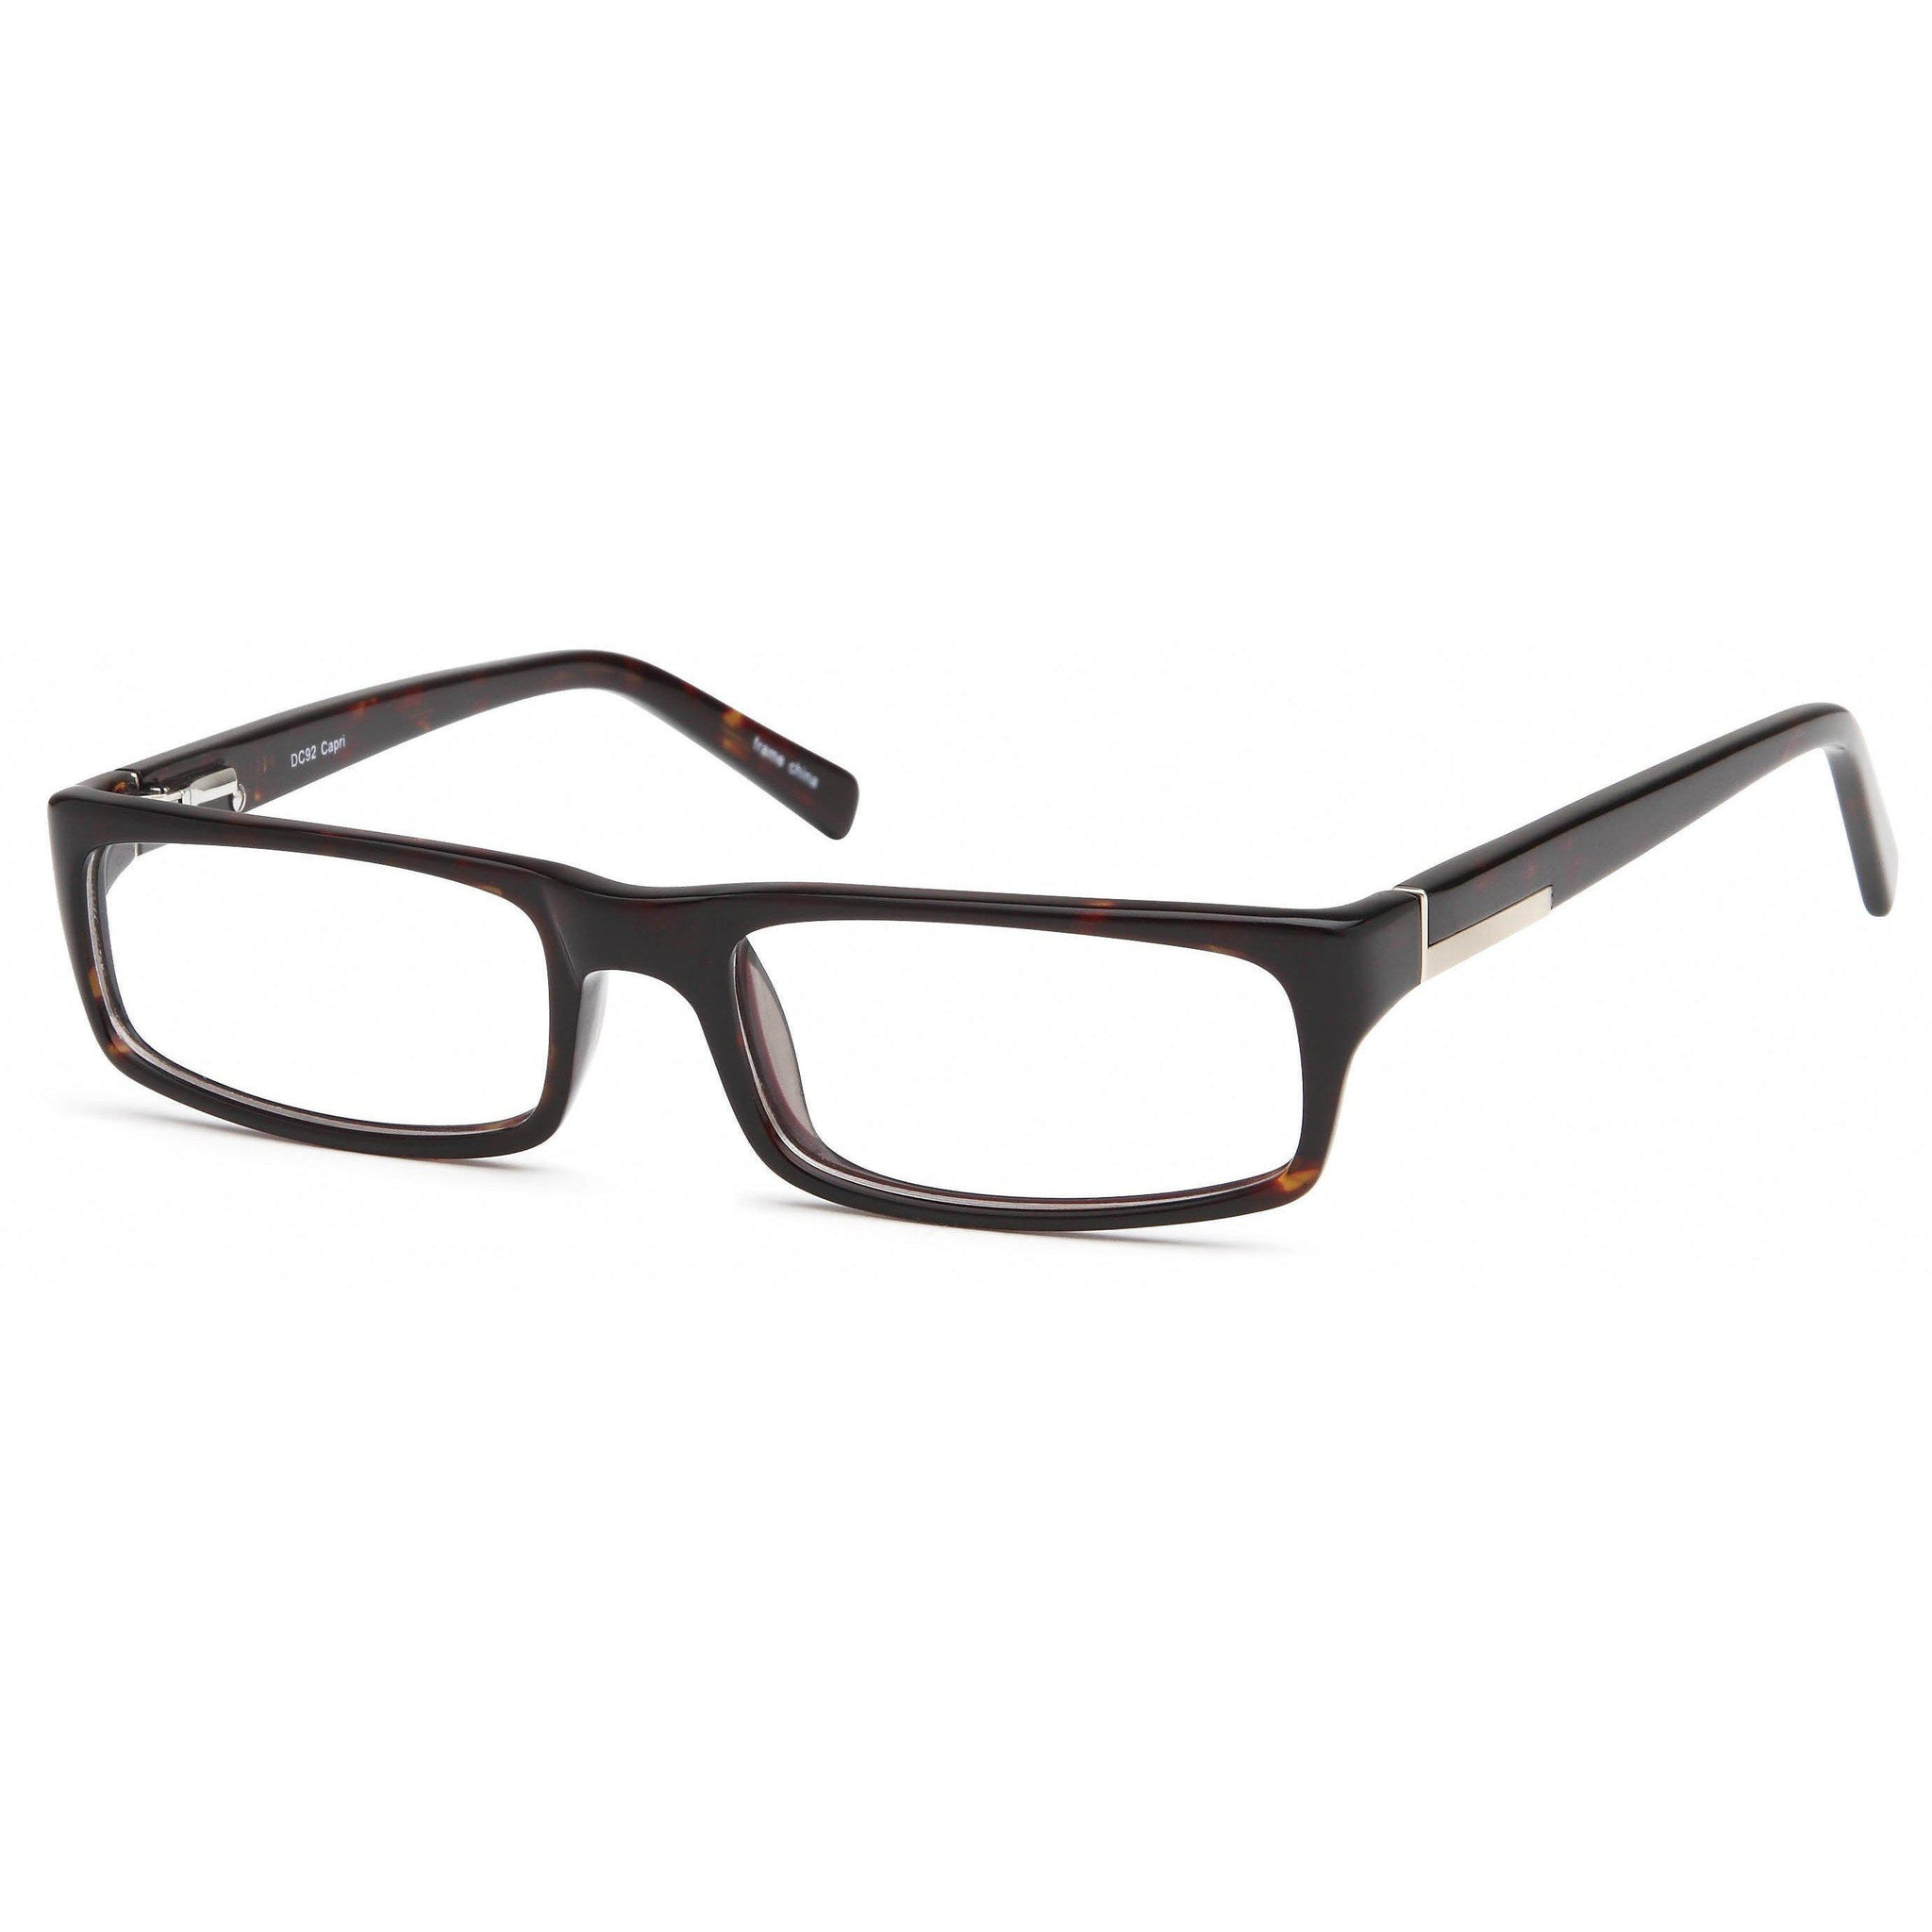 Di Caprio Prescription Glasses DC 92 Eyeglasses Frame - timetoshade